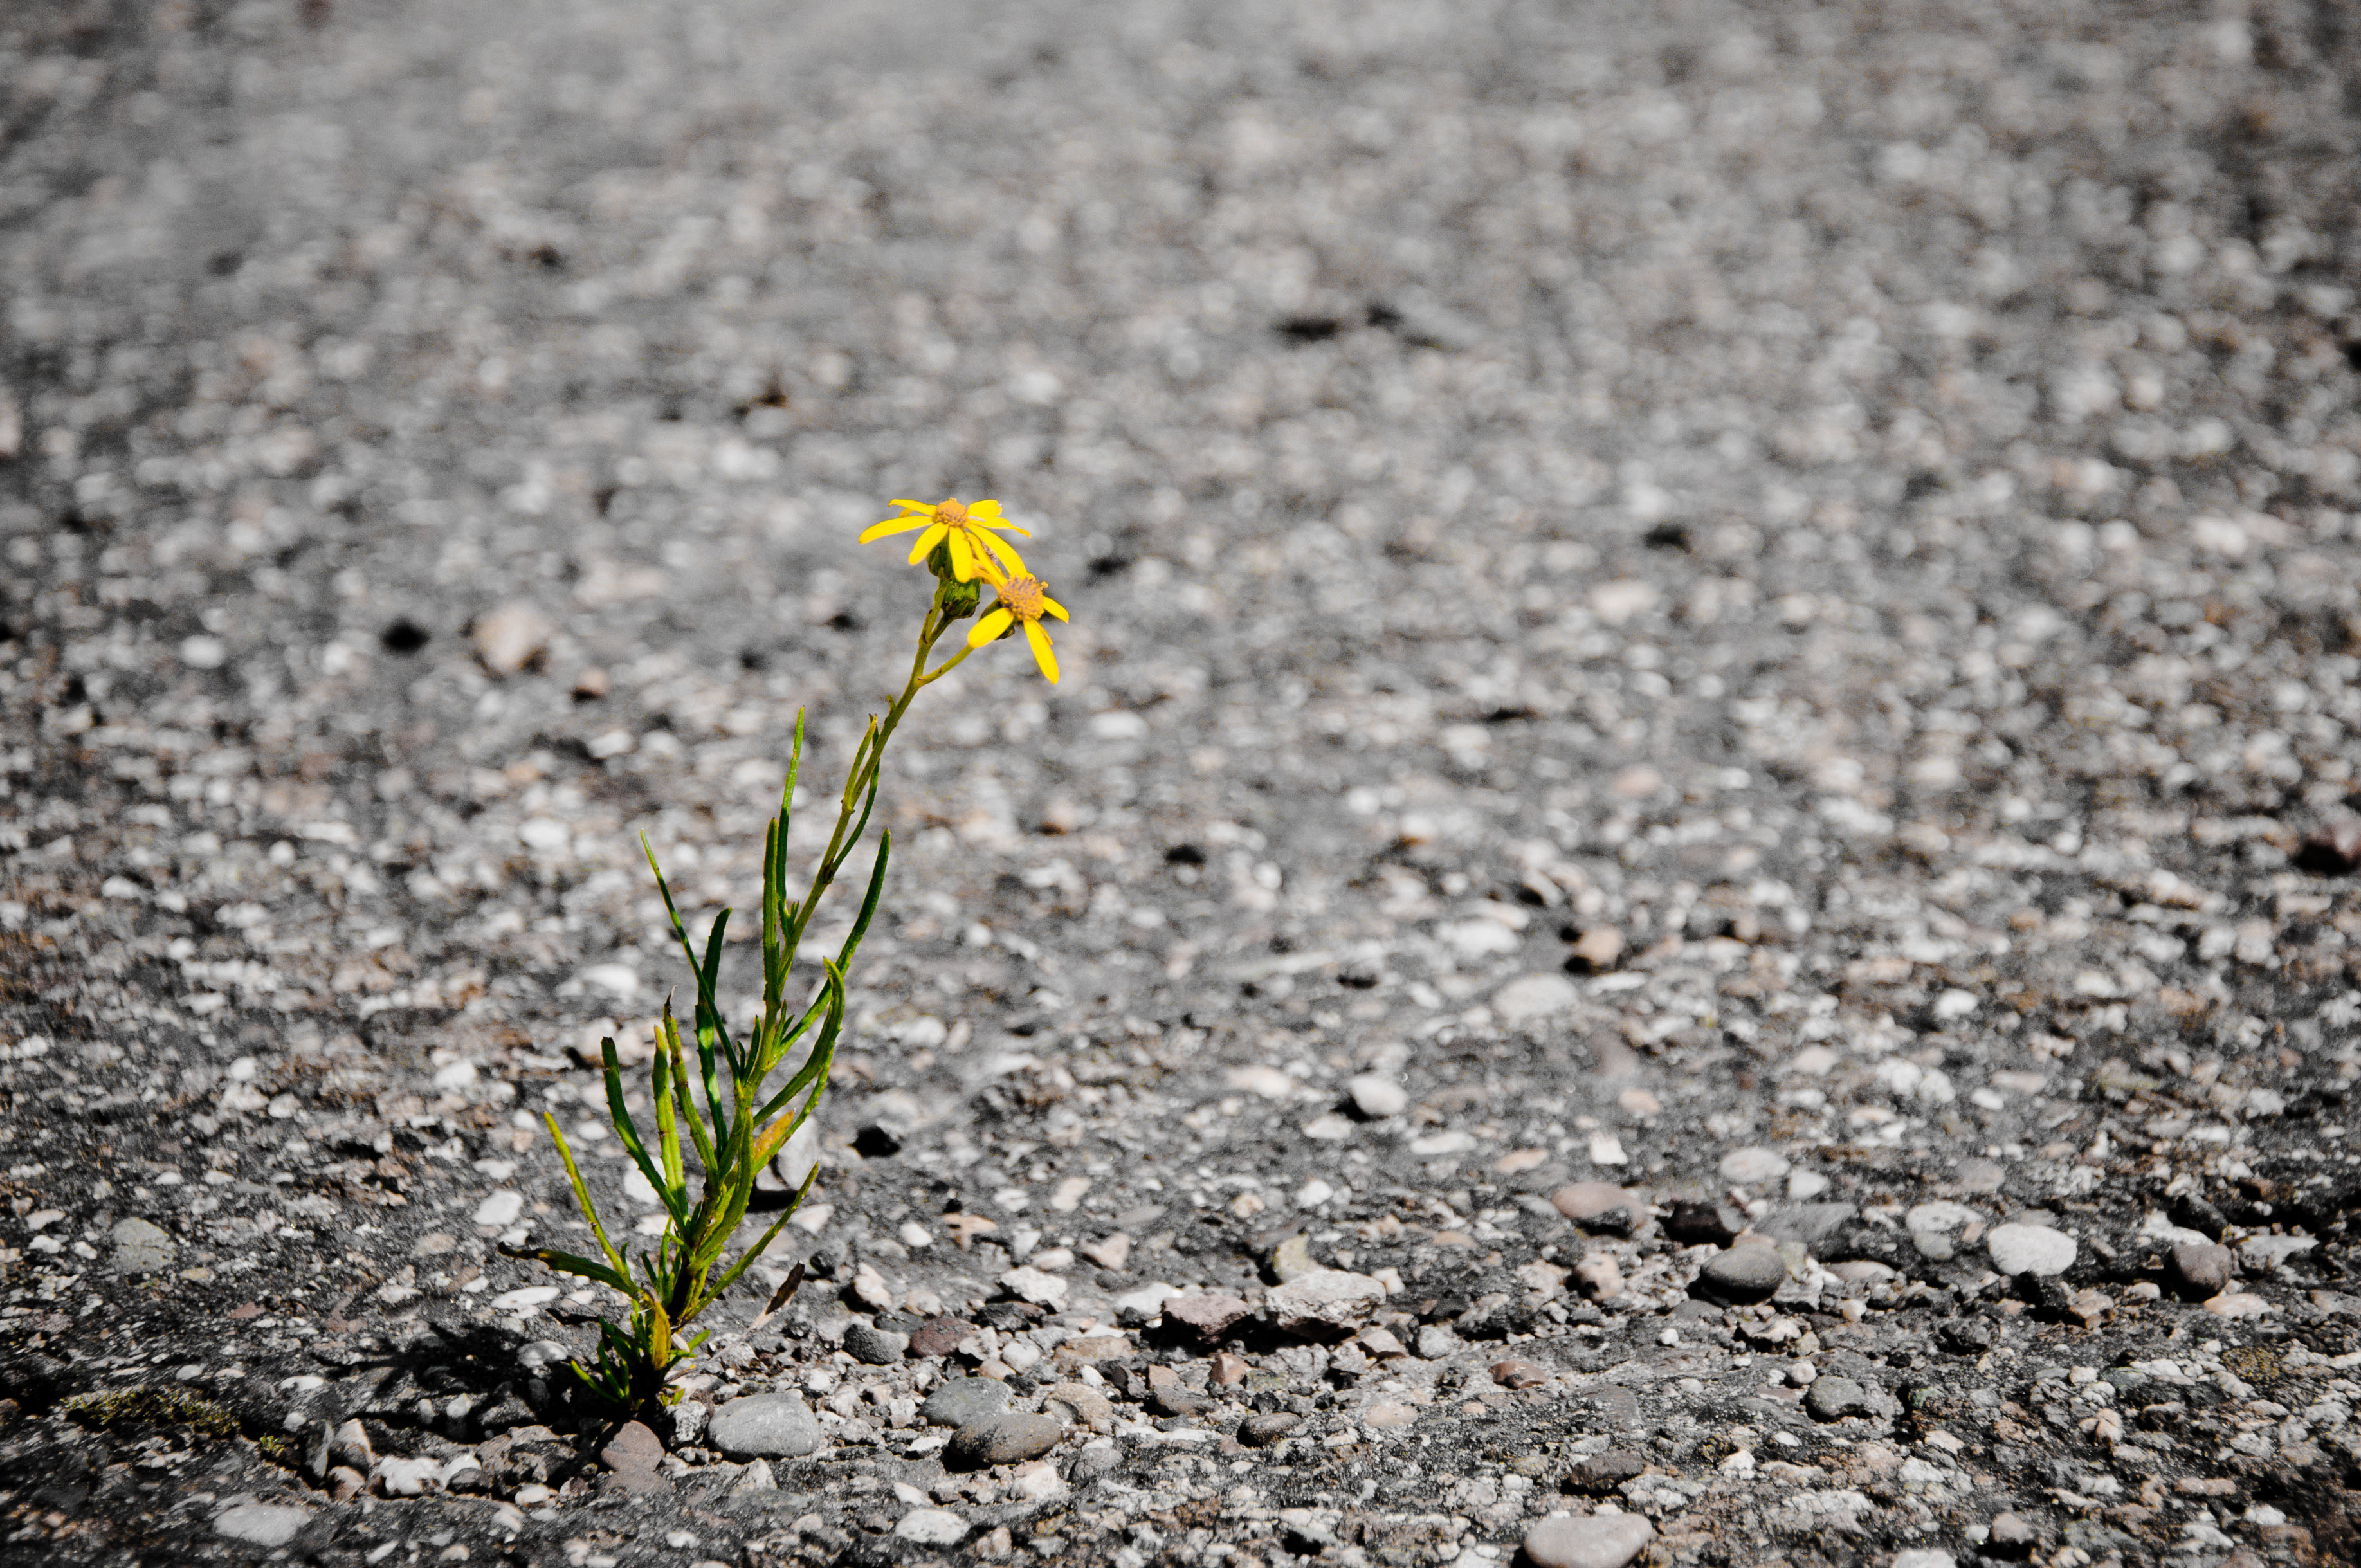 Lonely flower, Asphalt, Pavement, Weeds, Weed, HQ Photo